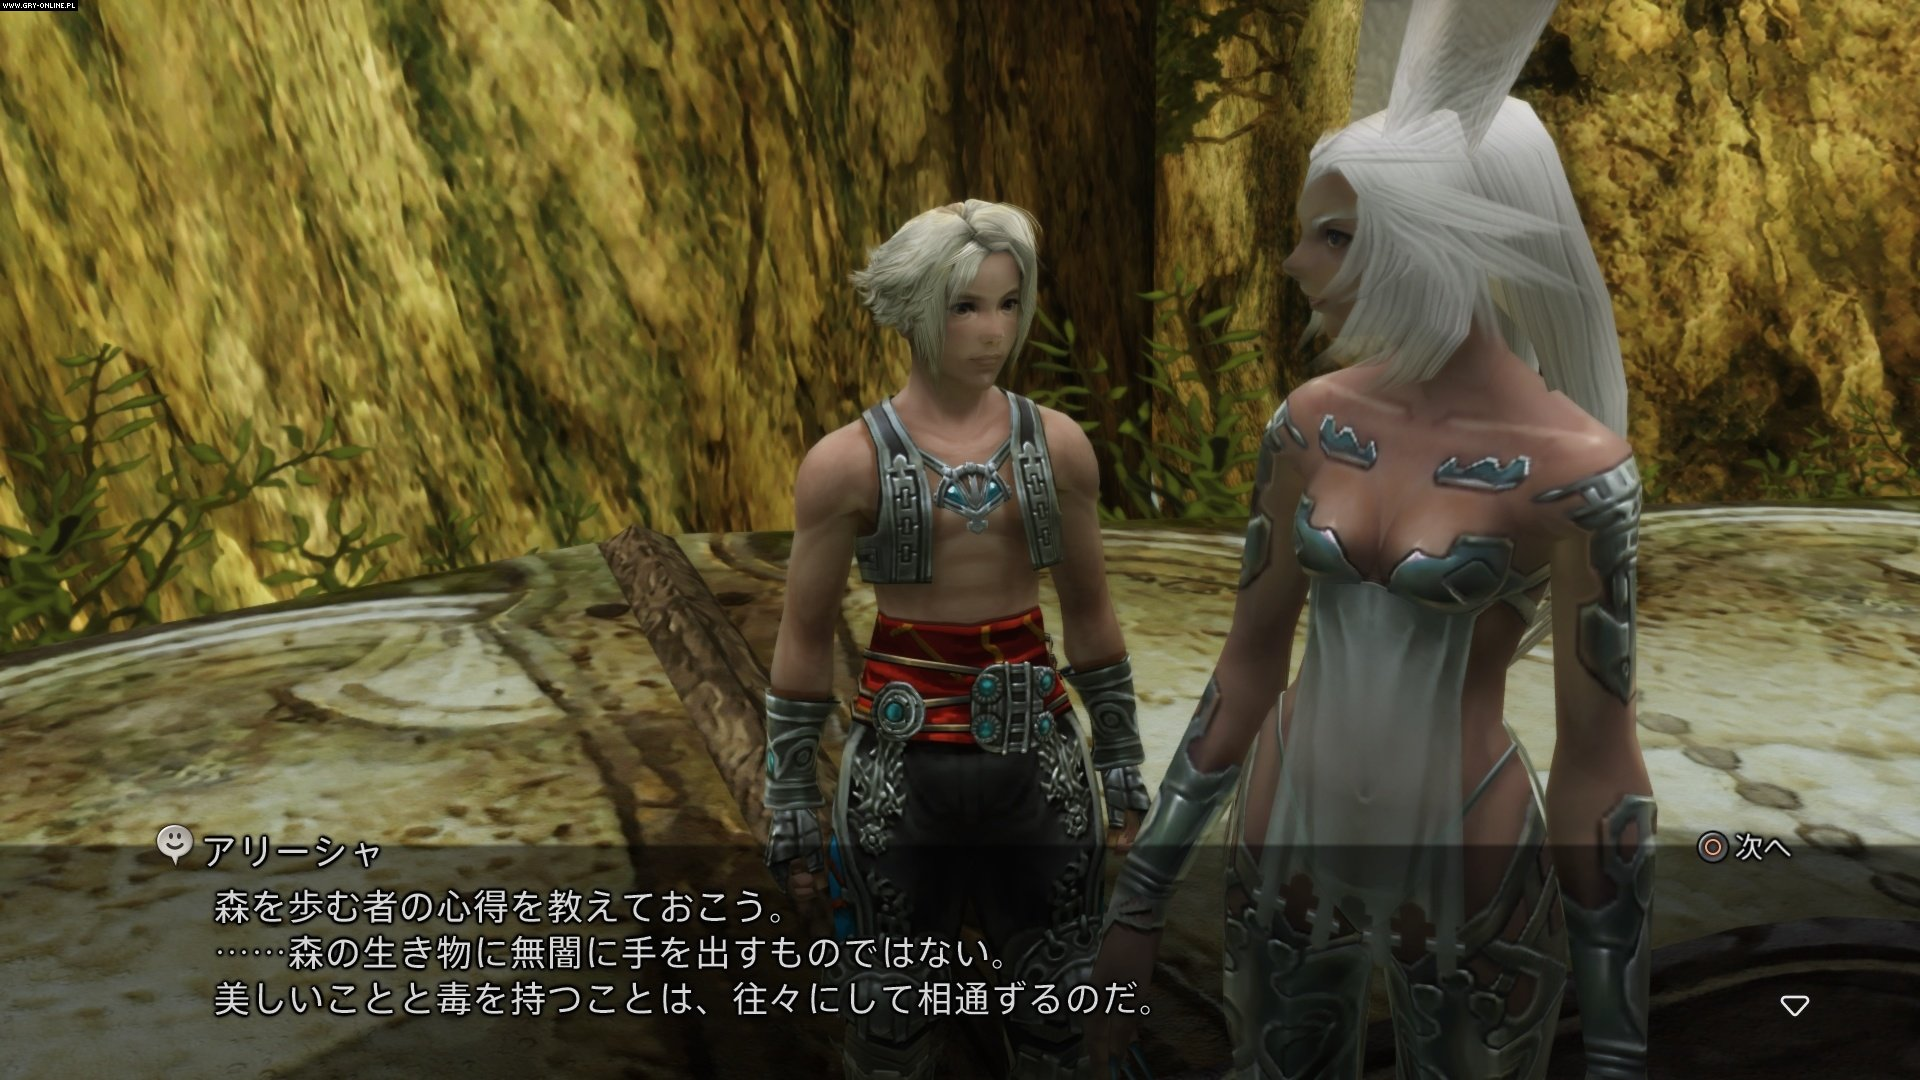 Final Fantasy XII: The Zodiac Age PS4 Gry Screen 22/71, Square-Enix / Eidos